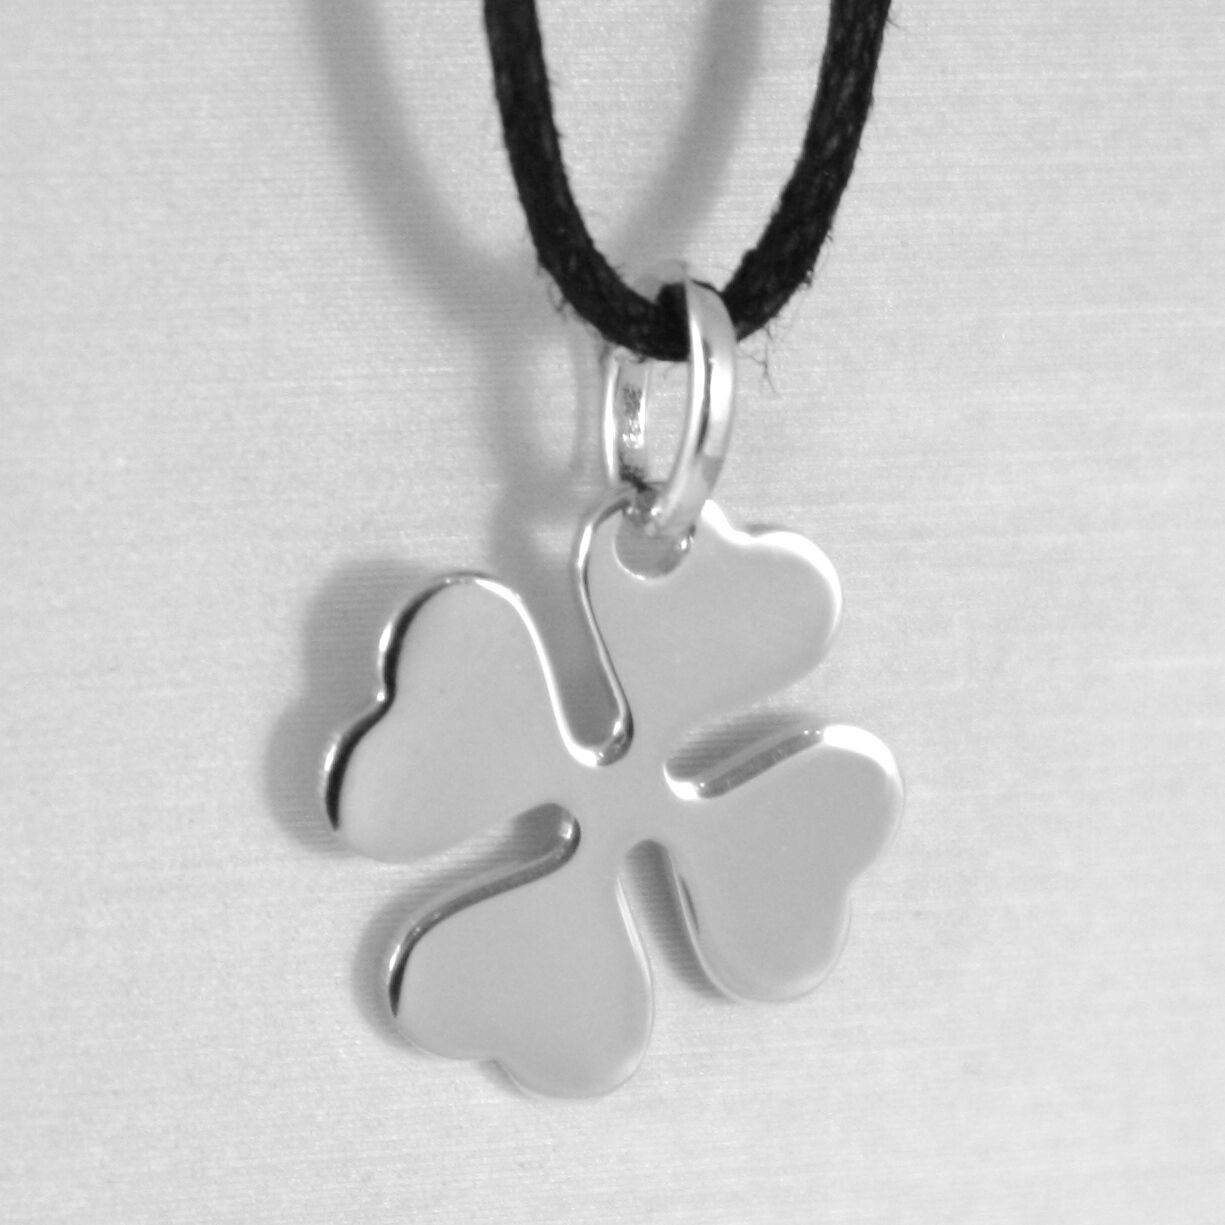 18K WHITE GOLD PENDANT CHARM 18 MM, FLAT LUCKY FOUR LEAF CLOVER, MADE IN ITALY